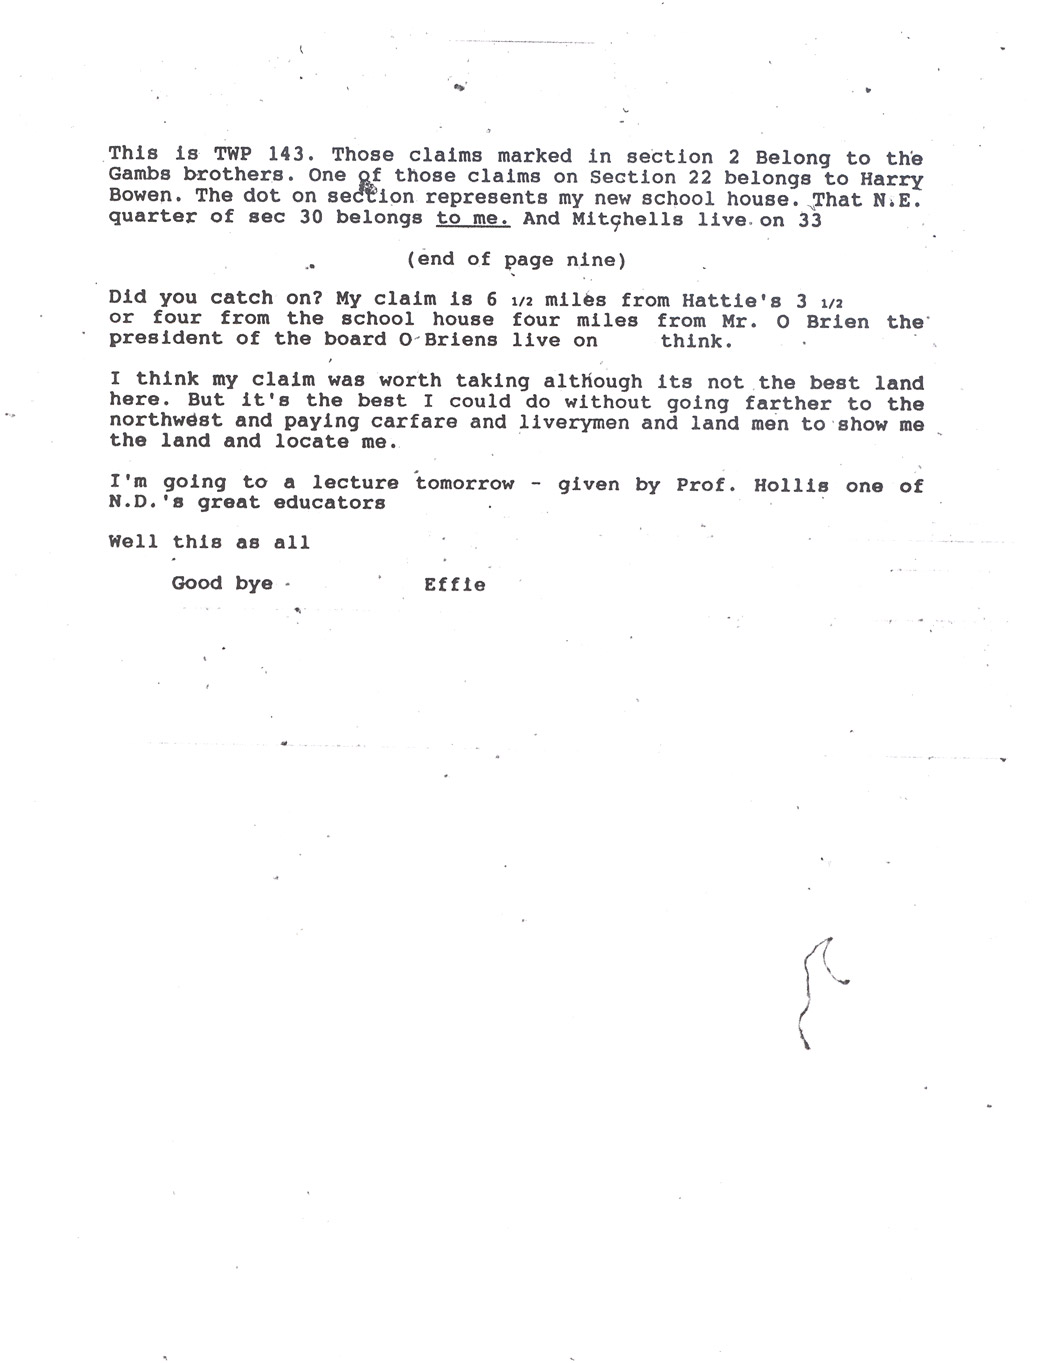 Effie Clinkenbeard Letter, original and transcript (Transcription Page 4)